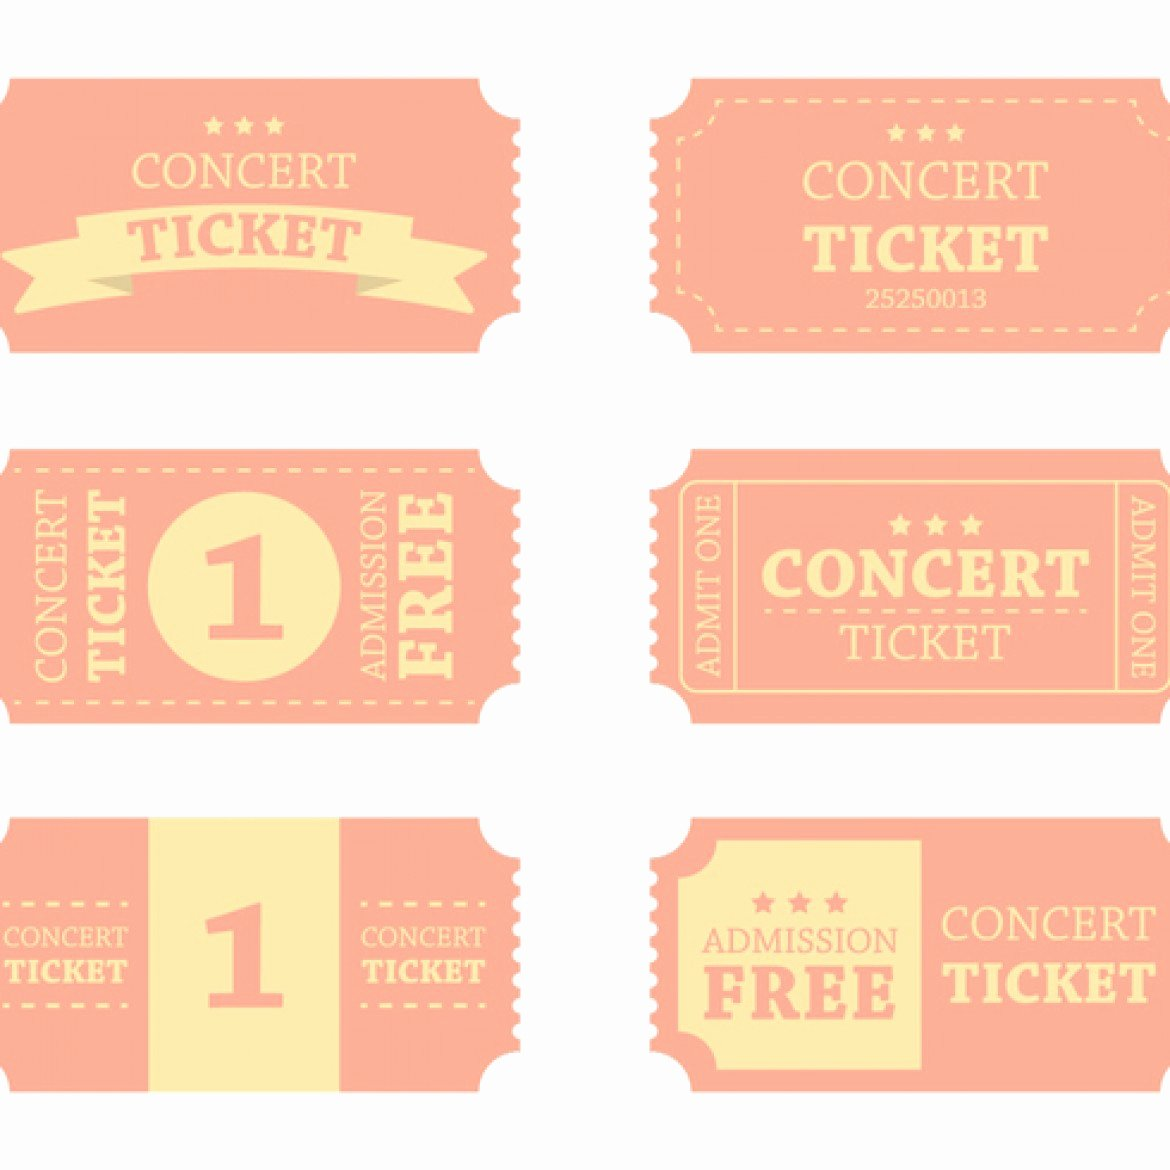 Concert Ticket Template Free Beautiful Blank Concert Ticket Template Clipart Best